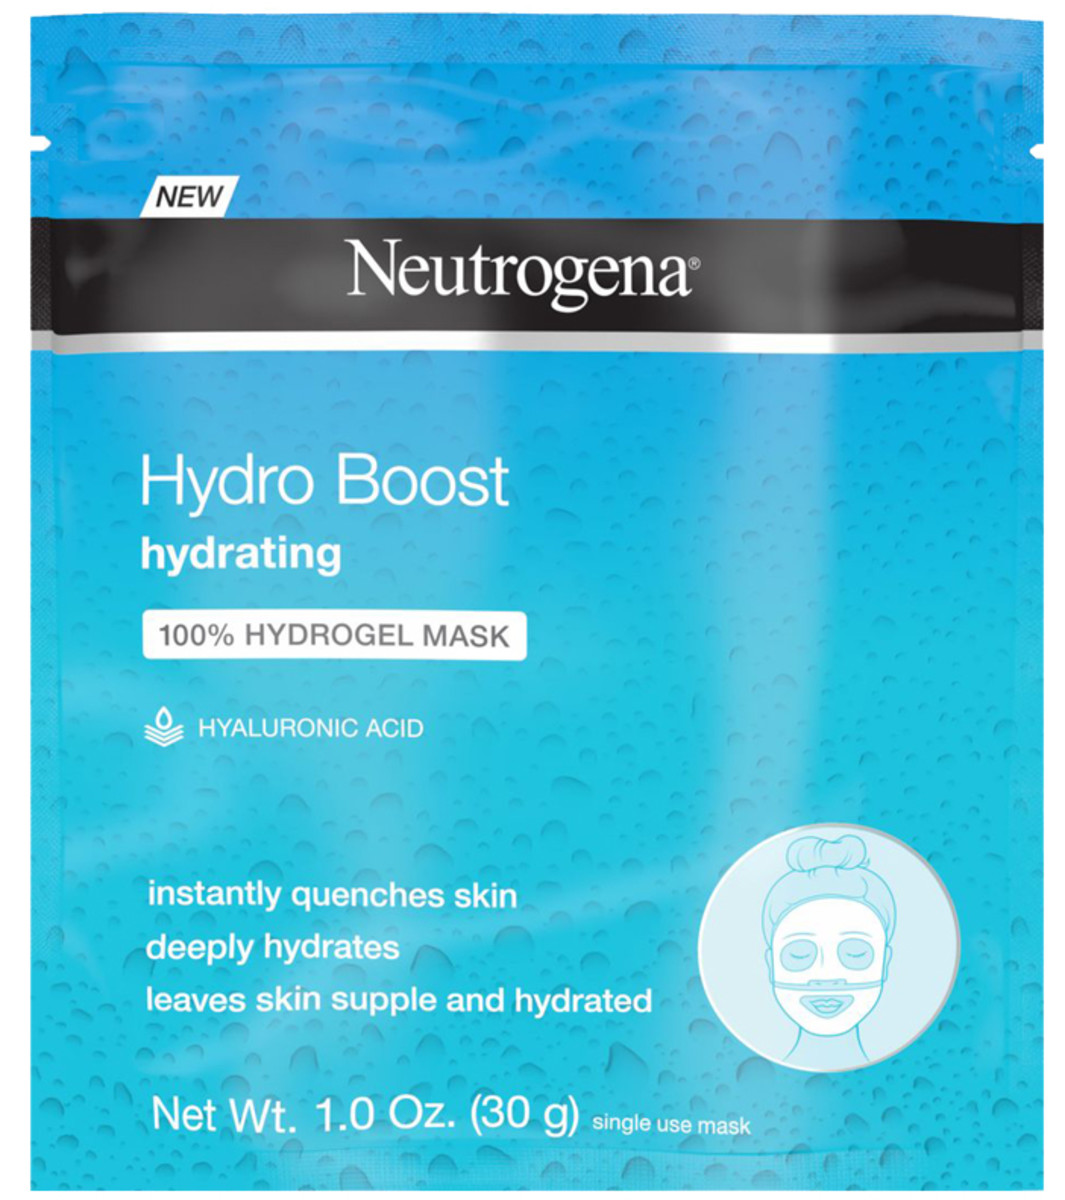 Neutrogena Hydro Boost Hydrogel Mask-BEAUTYGEEKS